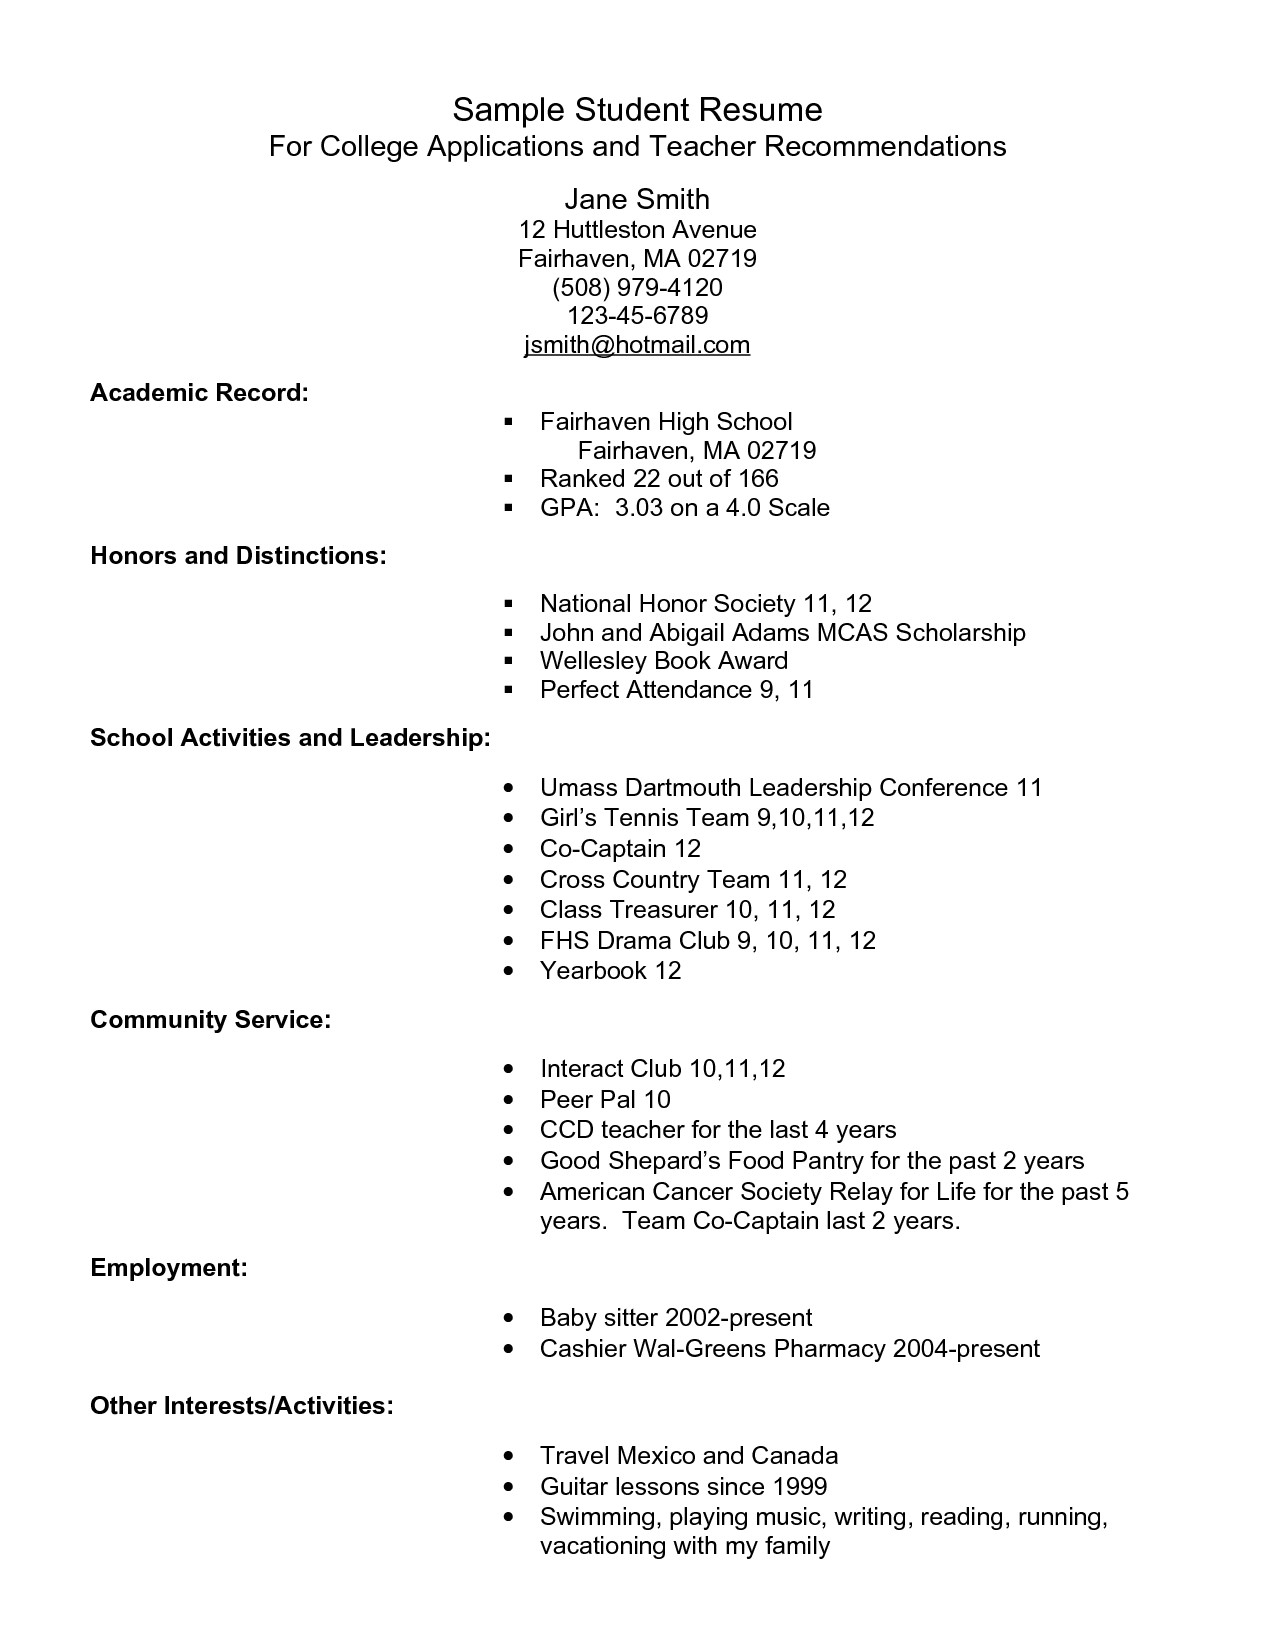 College Resume for High School Seniors - High School Student Resume format New Example Resume for High School